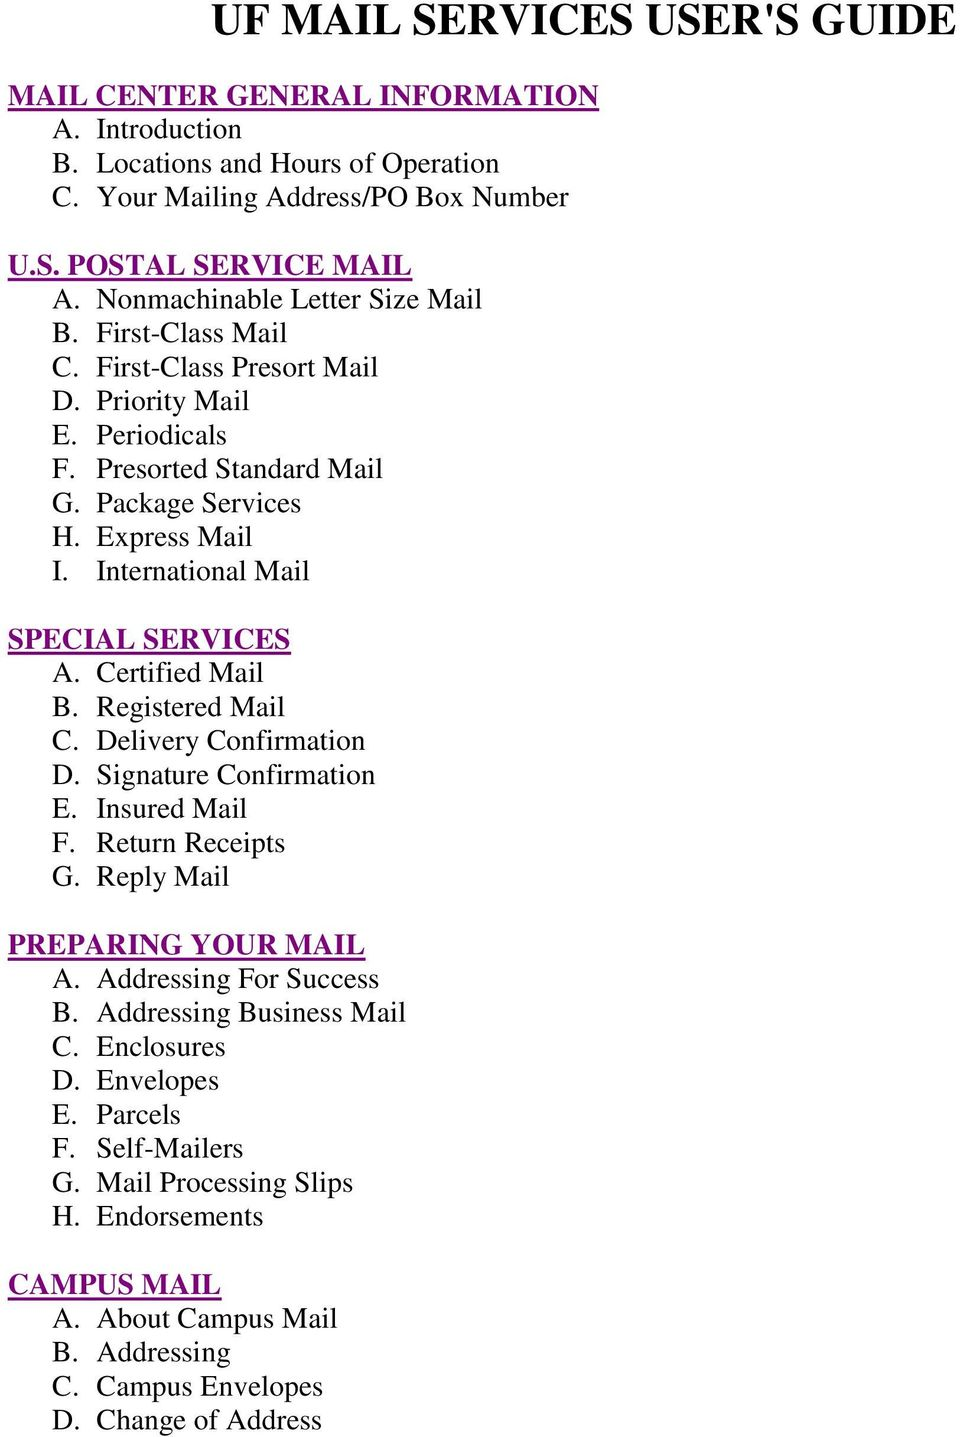 International Mail SPECIAL SERVICES A. Certified Mail B. Registered Mail C. Delivery Confirmation D. Signature Confirmation E. Insured Mail F. Return Receipts G. Reply Mail PREPARING YOUR MAIL A.